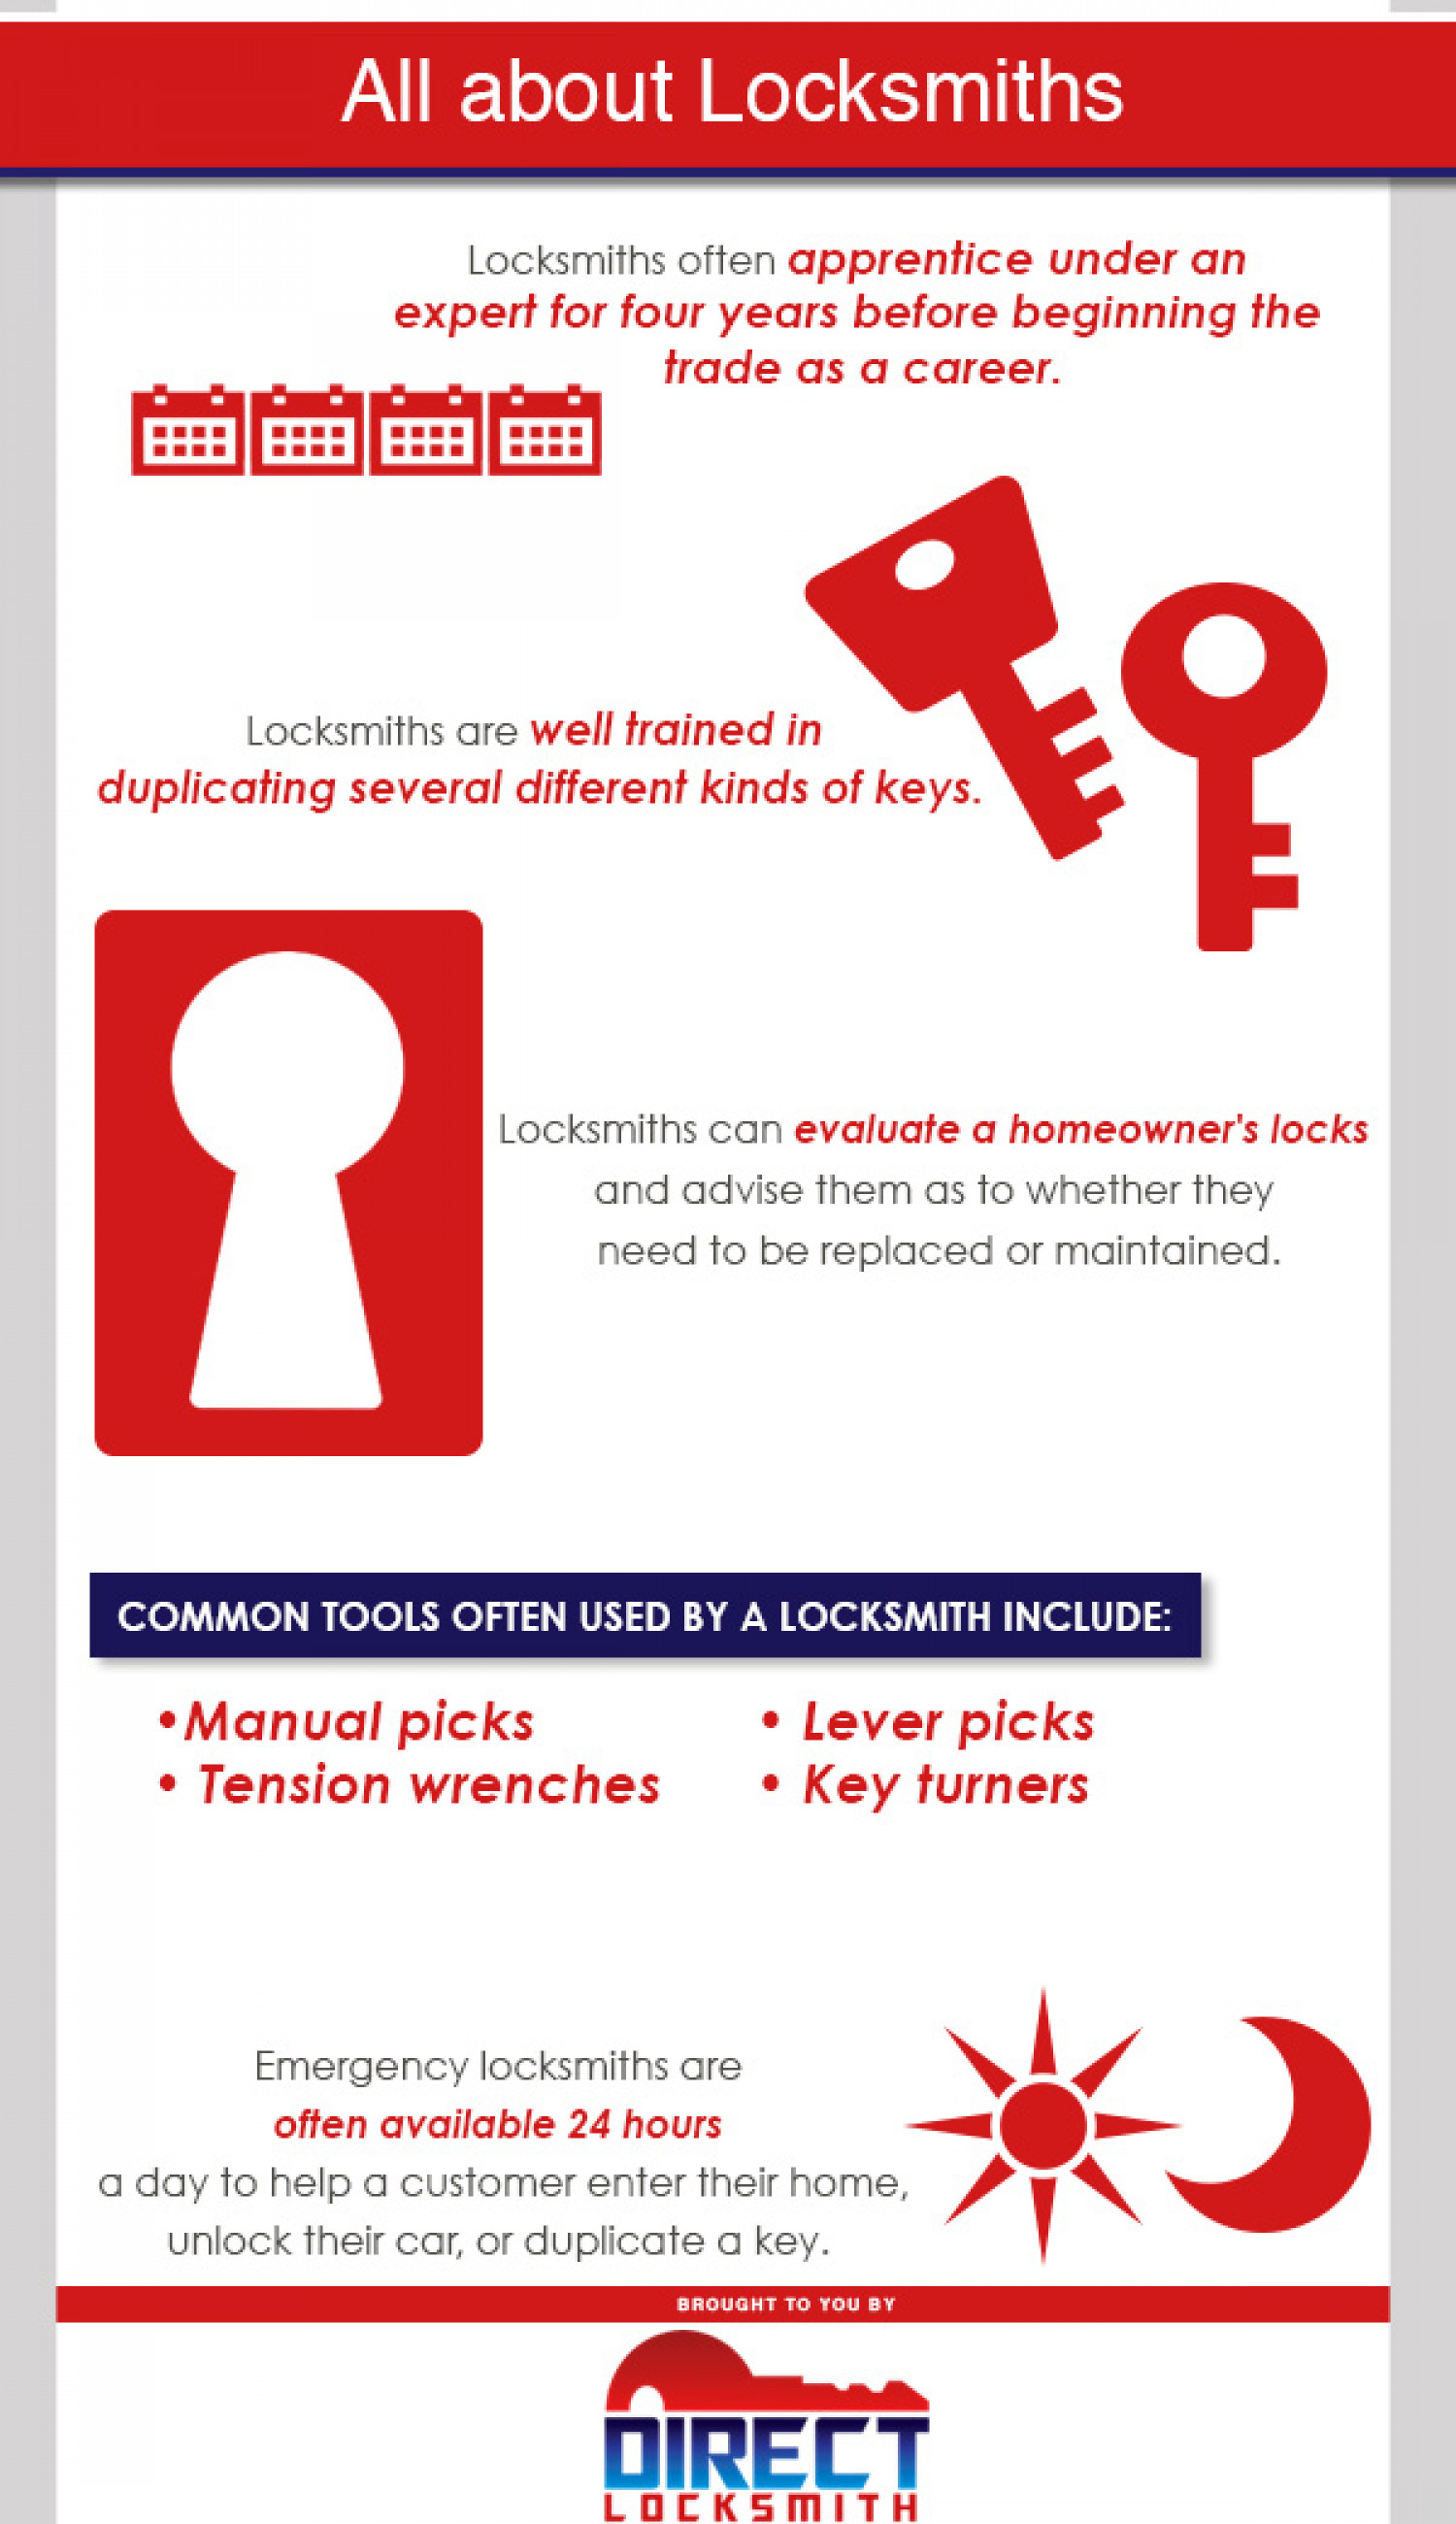 All About Locksmiths Infographic